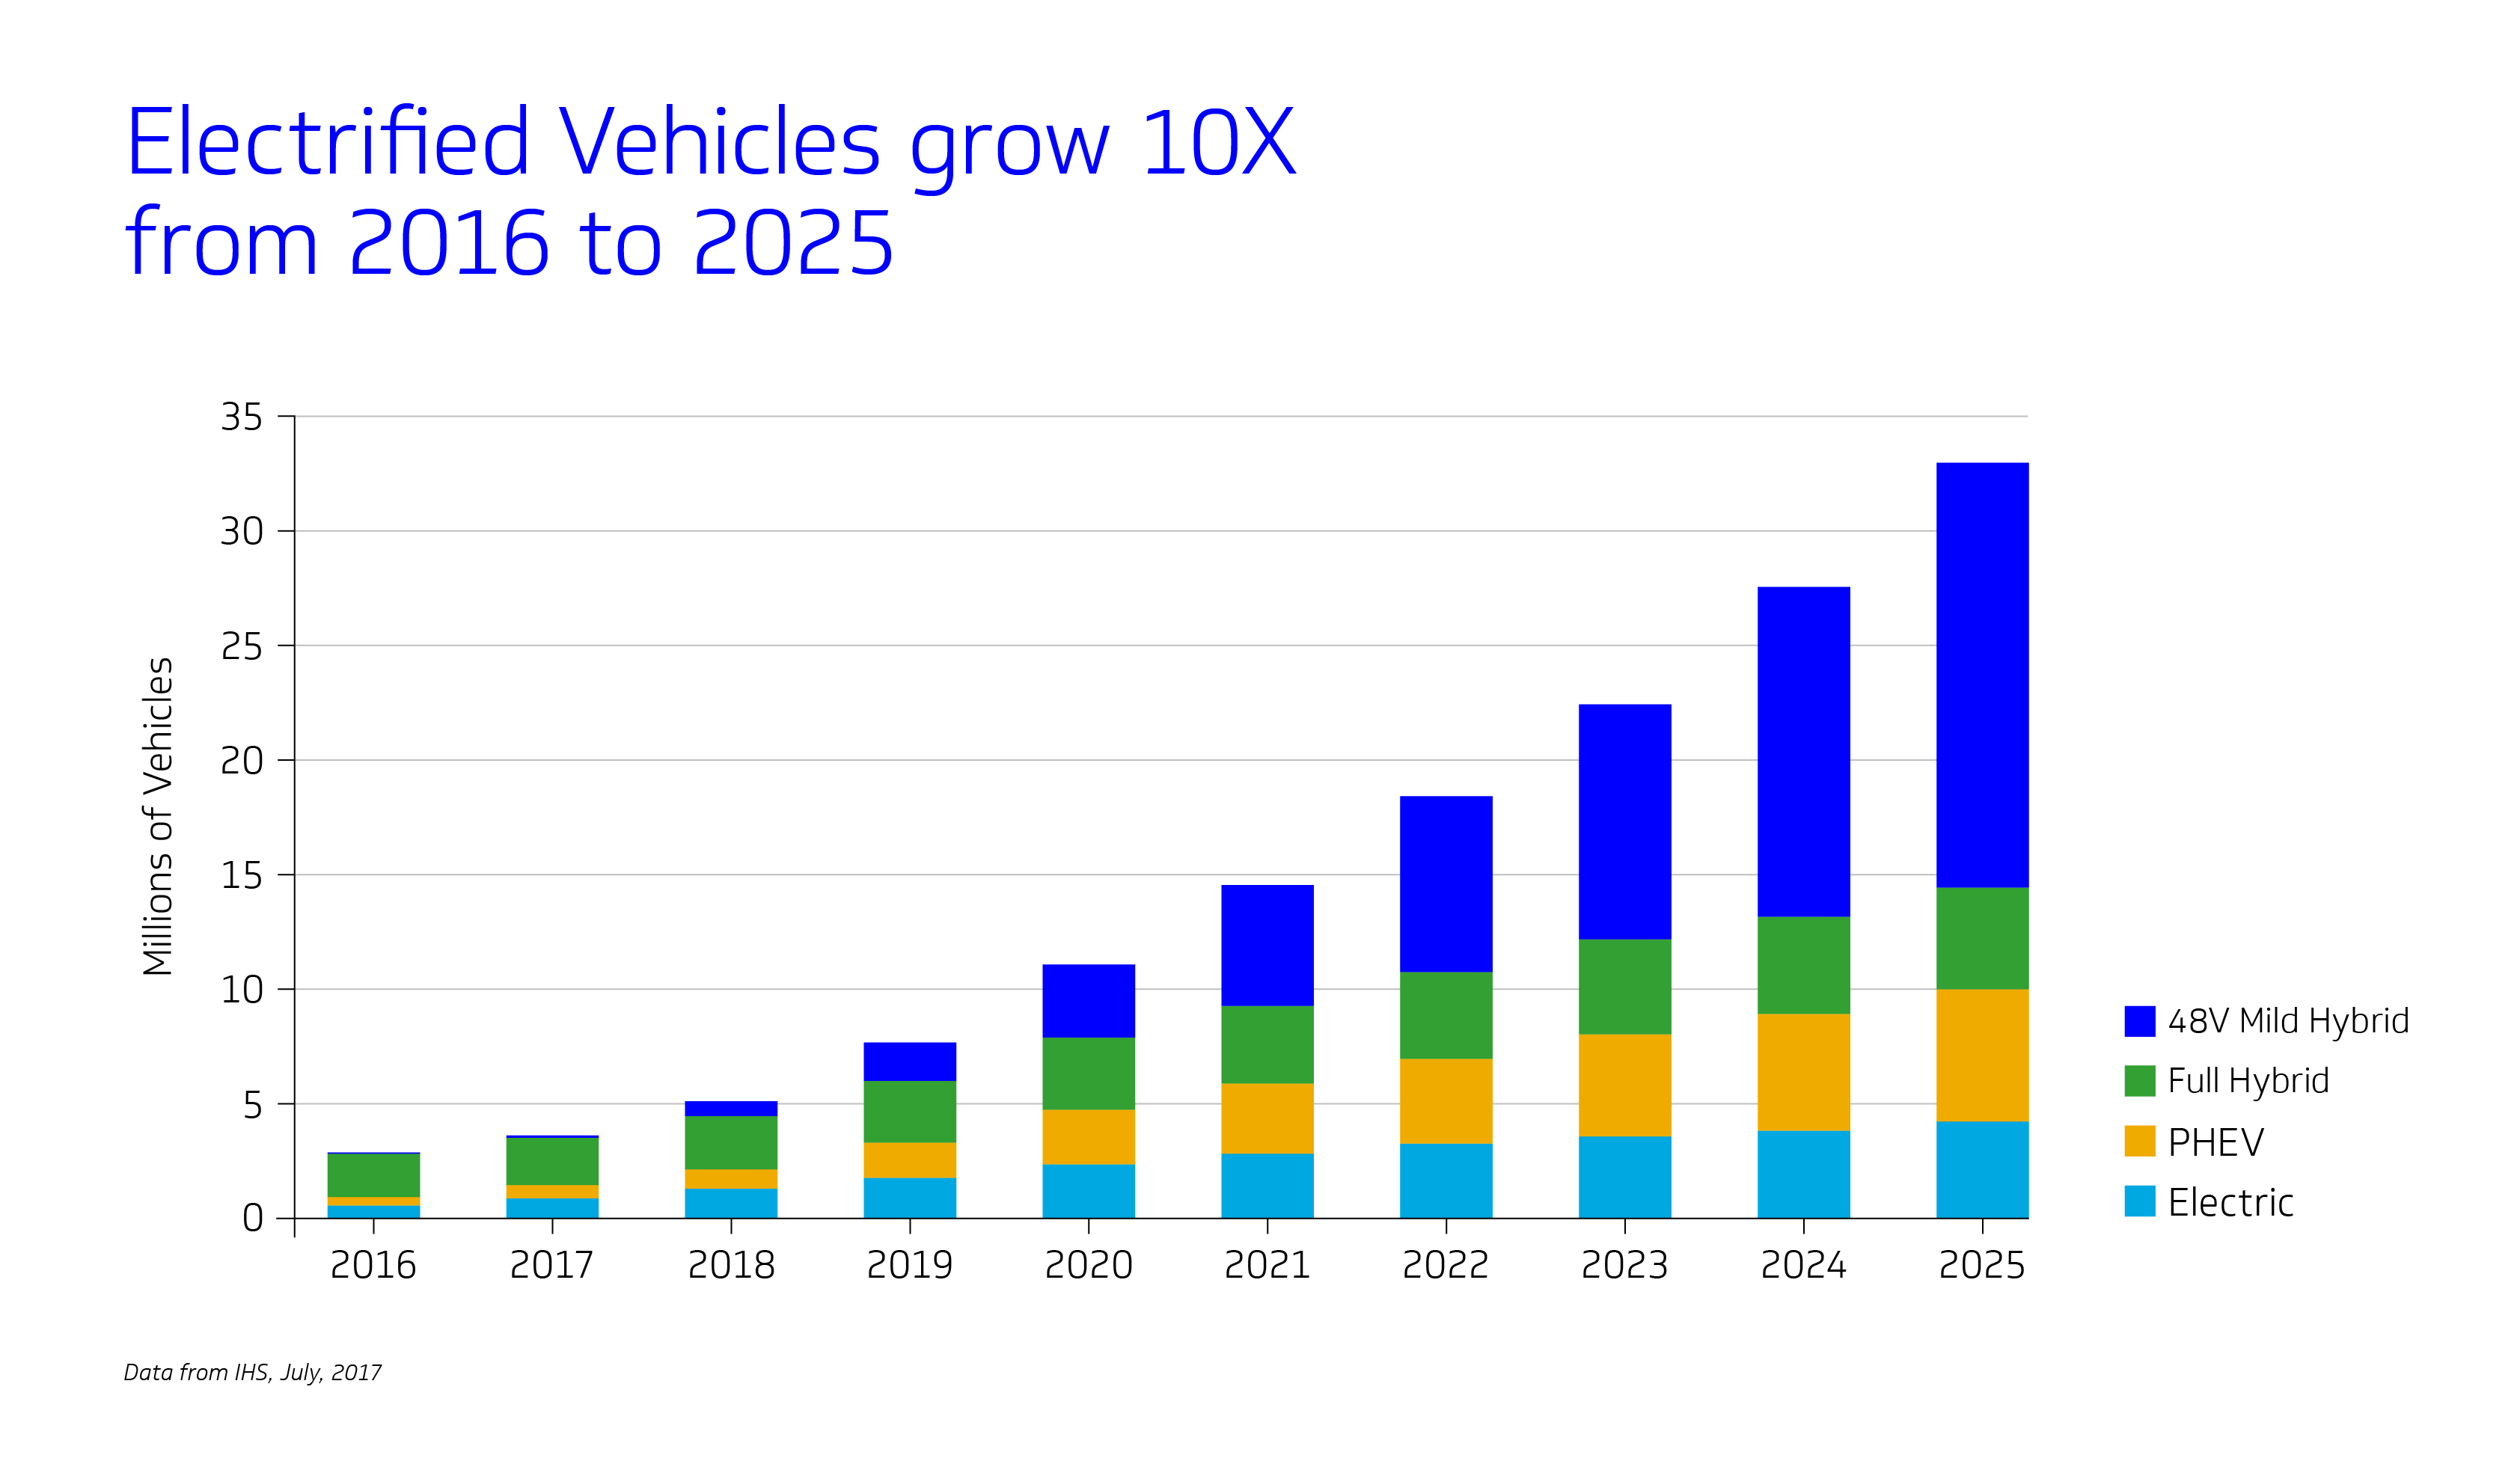 bar chart showing the projected growth of electrified vehicles through 2025.